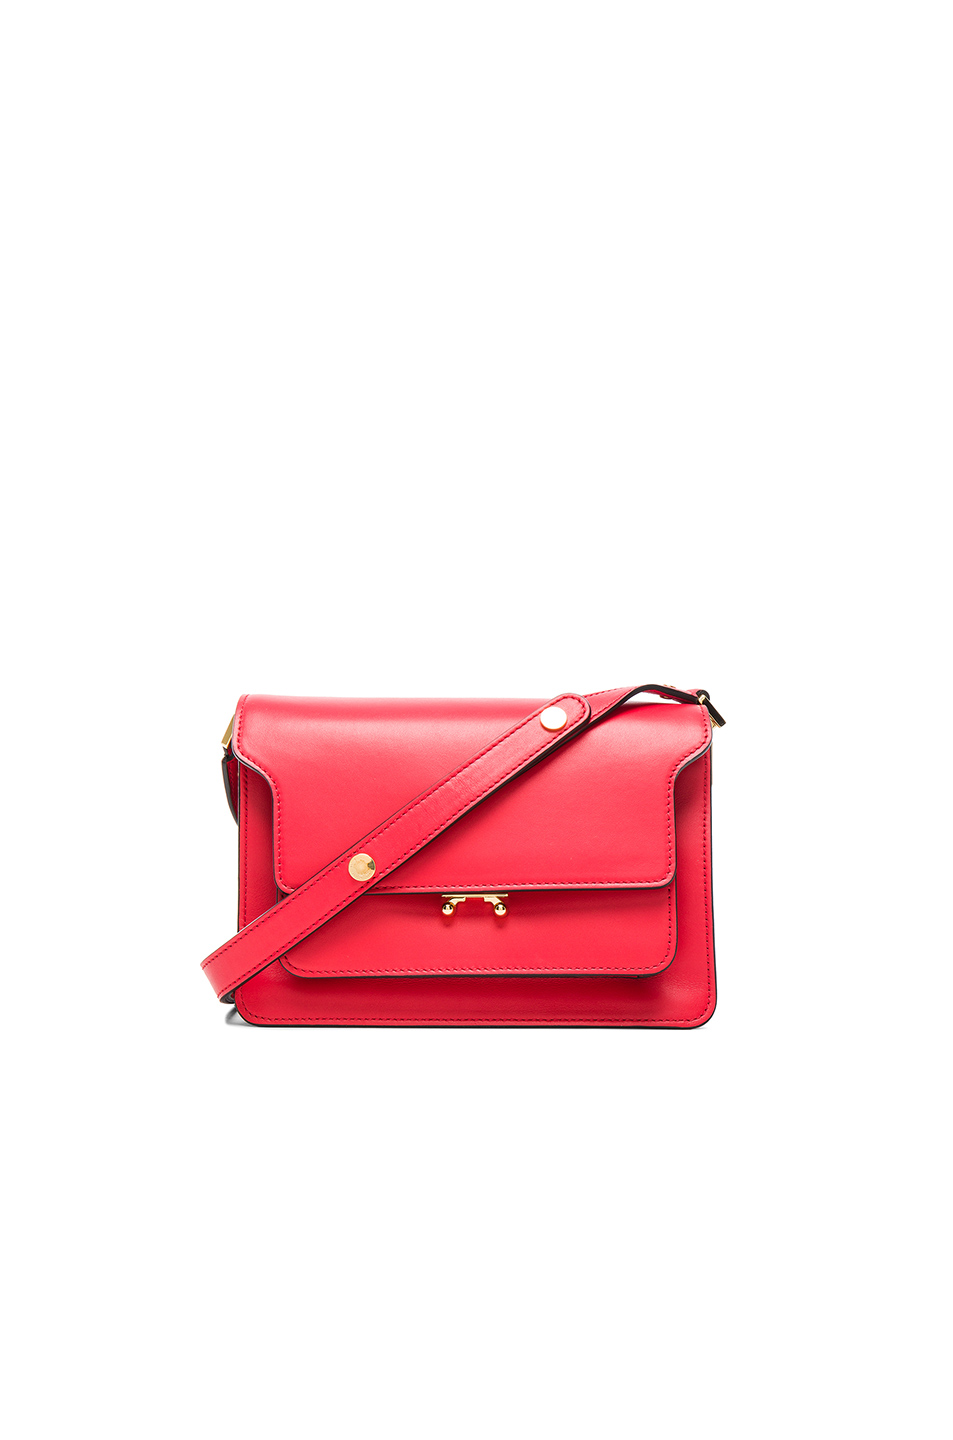 Trunk Medium Red Leather Shoulder Bag